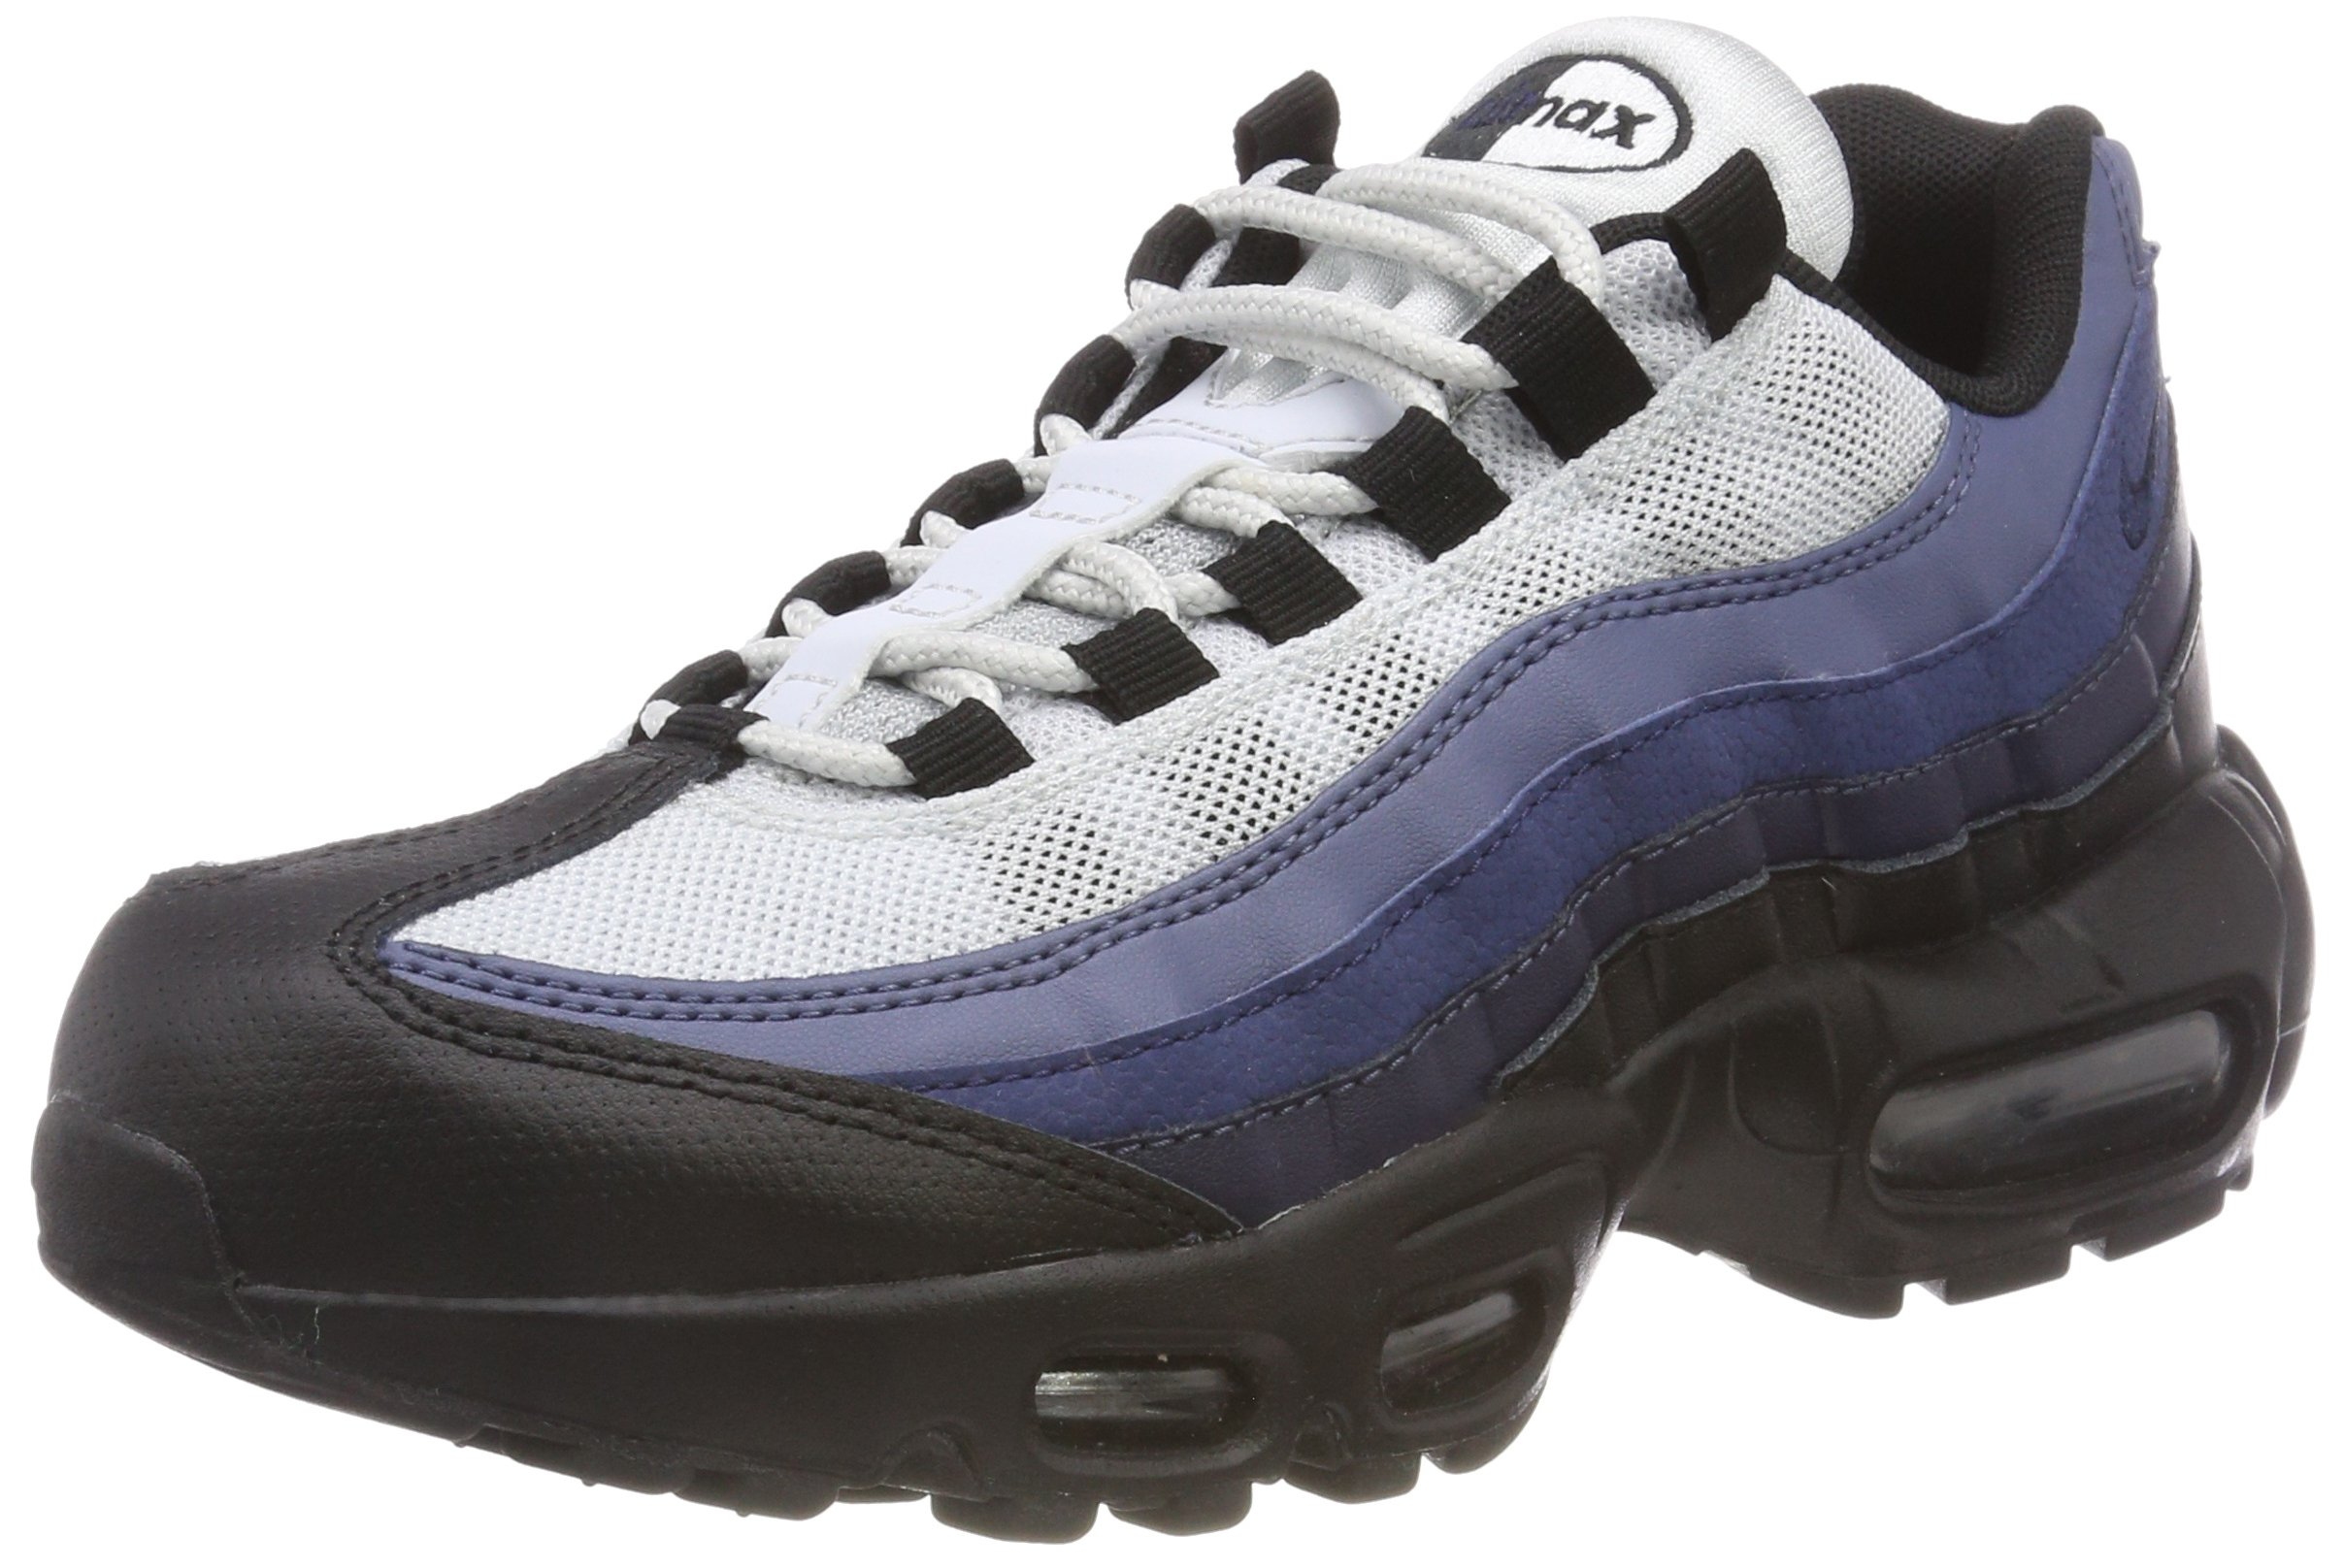 Galleon - Nike Air Max 95 Men s Essential Shoes Black Obsidian Navy Blue  749766-028 (12 D(M) US) 8b96c1ac5